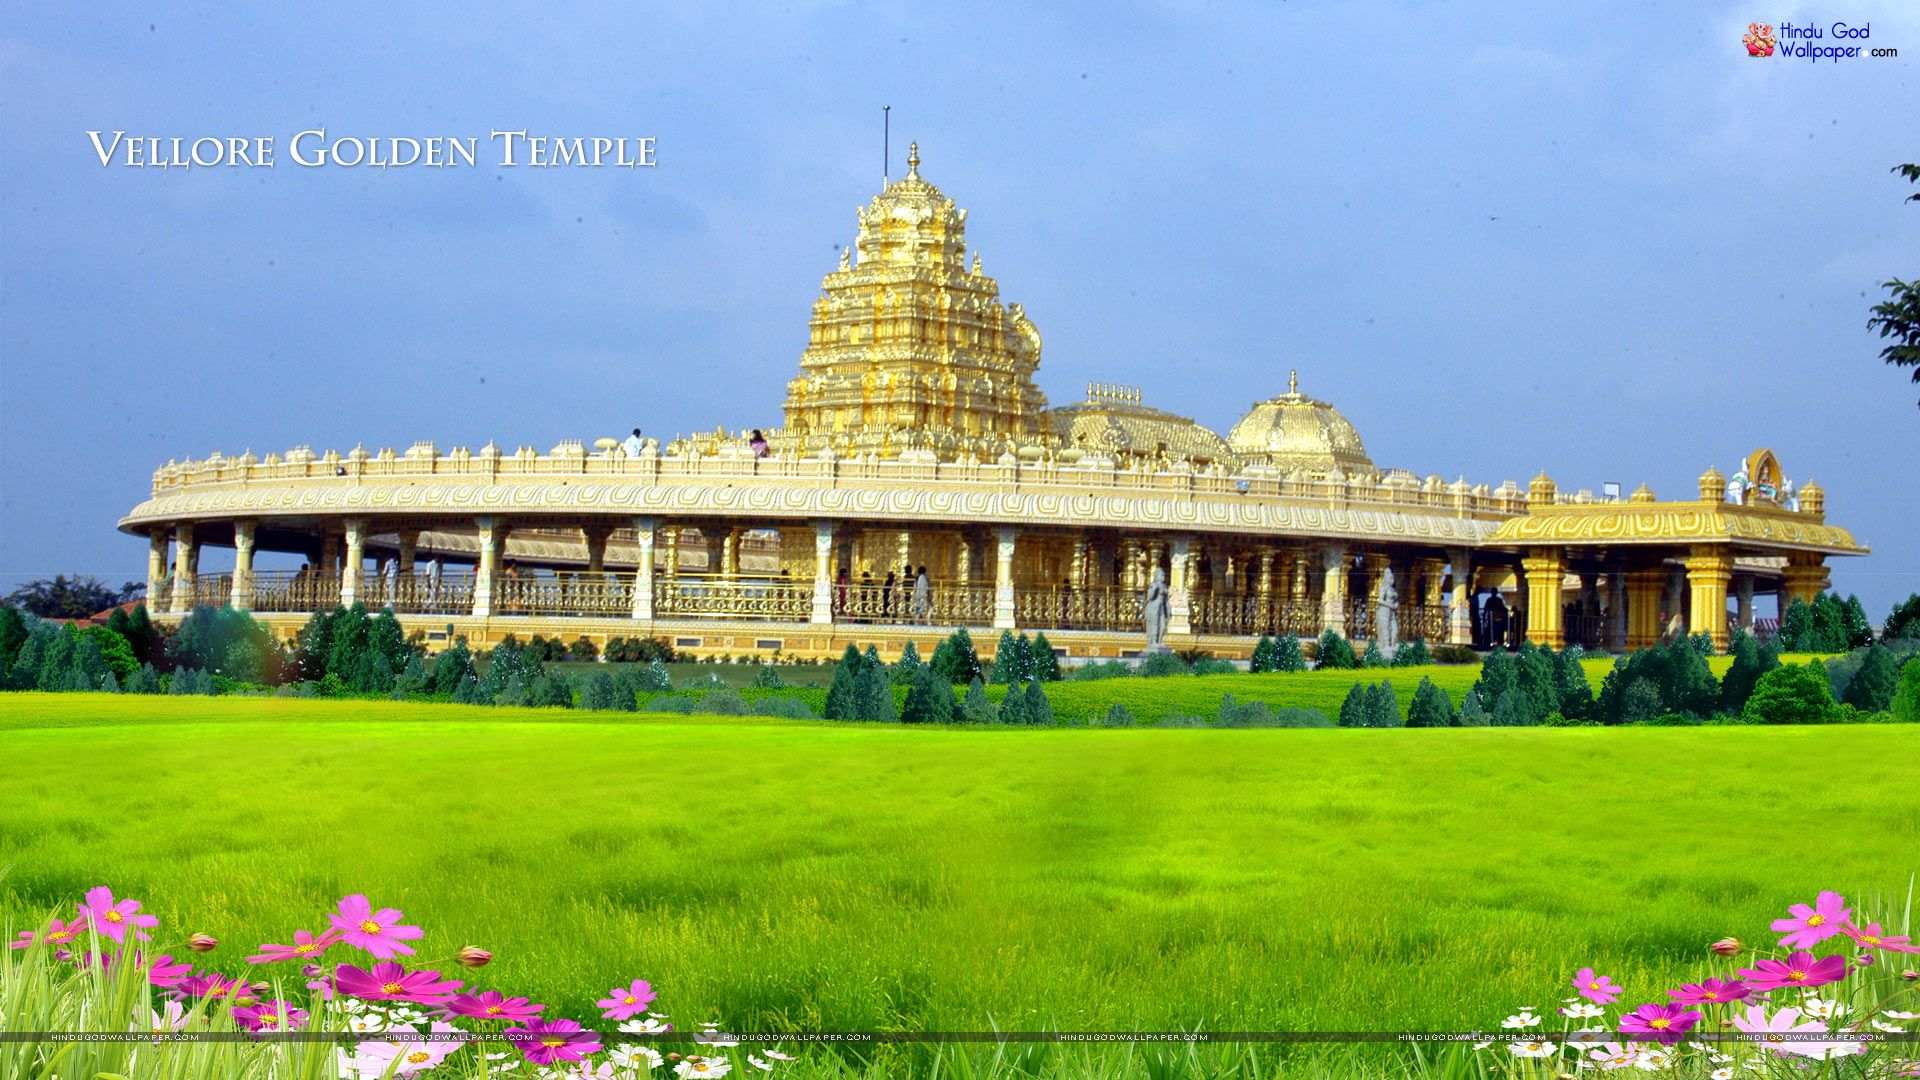 vellore golden temple wallpapers, photos, images download | temples